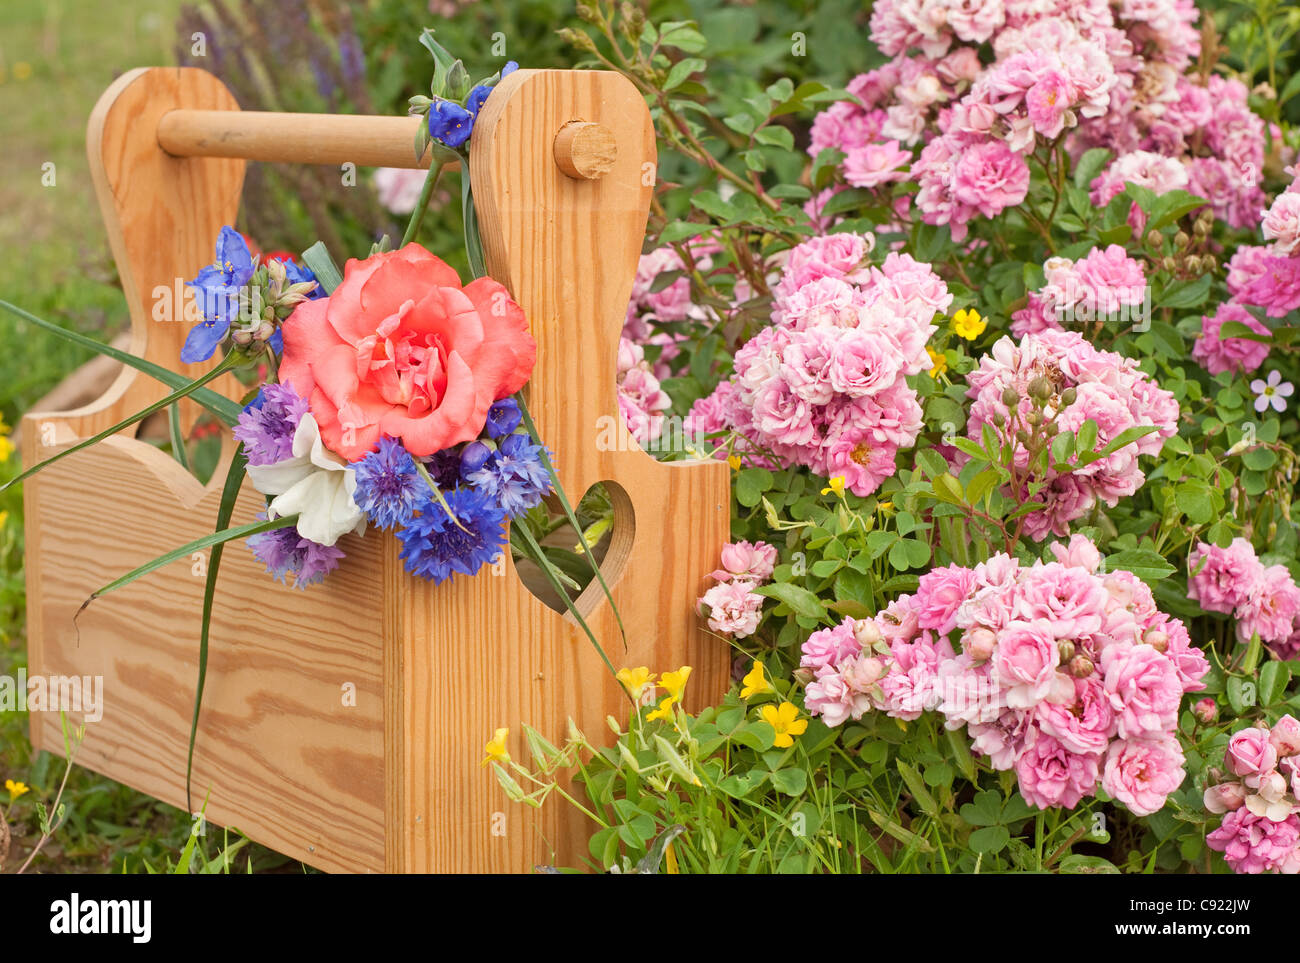 A wooden carrier box with spring flowers, against floral background with pink mini roses - Stock Image